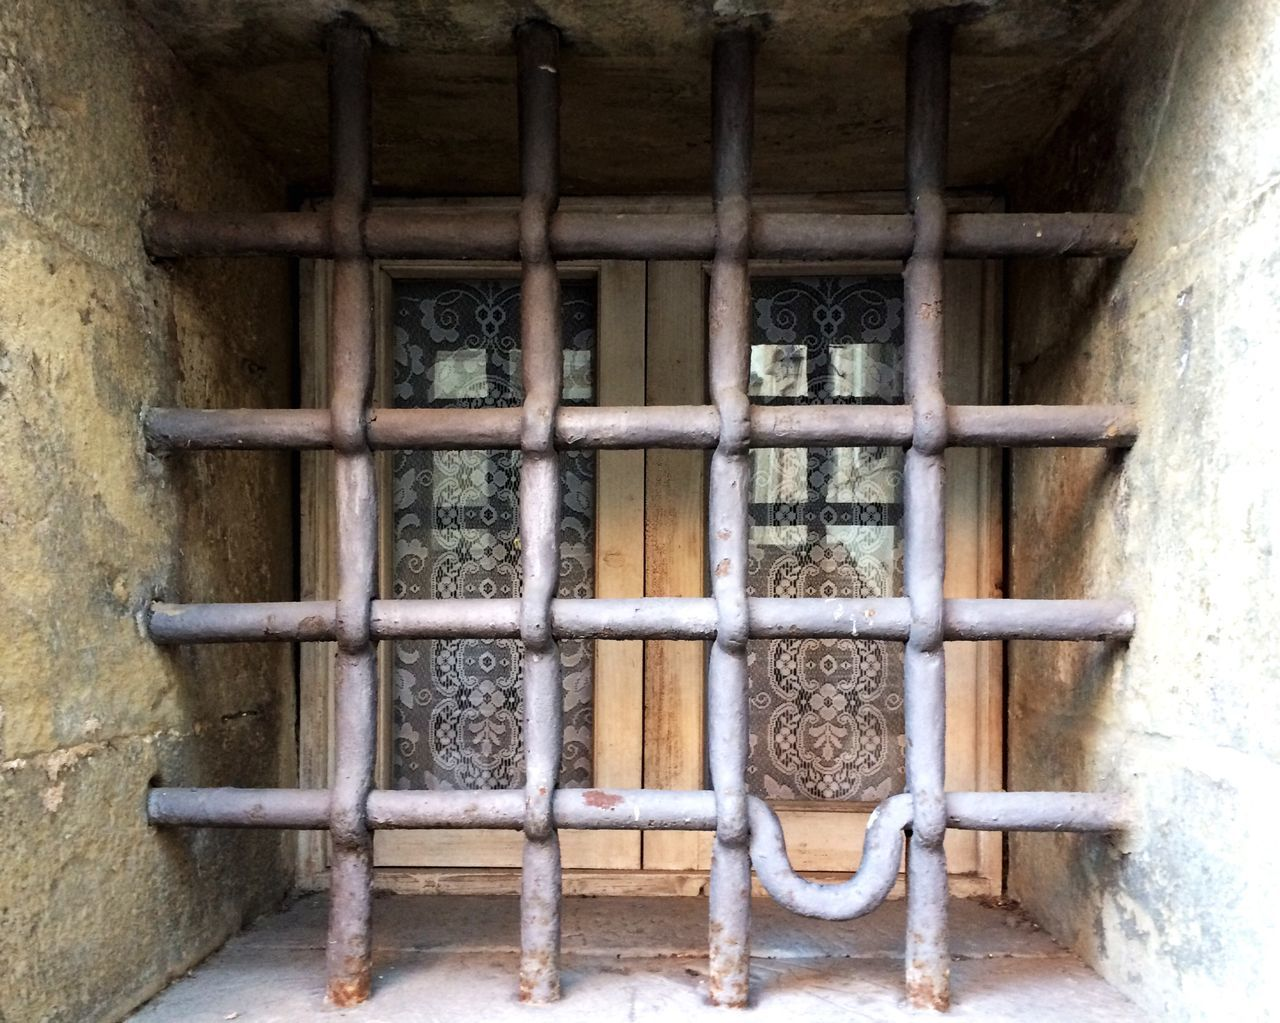 Built Structure No People Wood - Material Architecture Building Exterior Outdoors Close-up Iron - Metal Window Find The Beauty In The Ordinary Find The Difference Architecture Tuscany Stone Traveling Home For The Holidays Art Is Everywhere